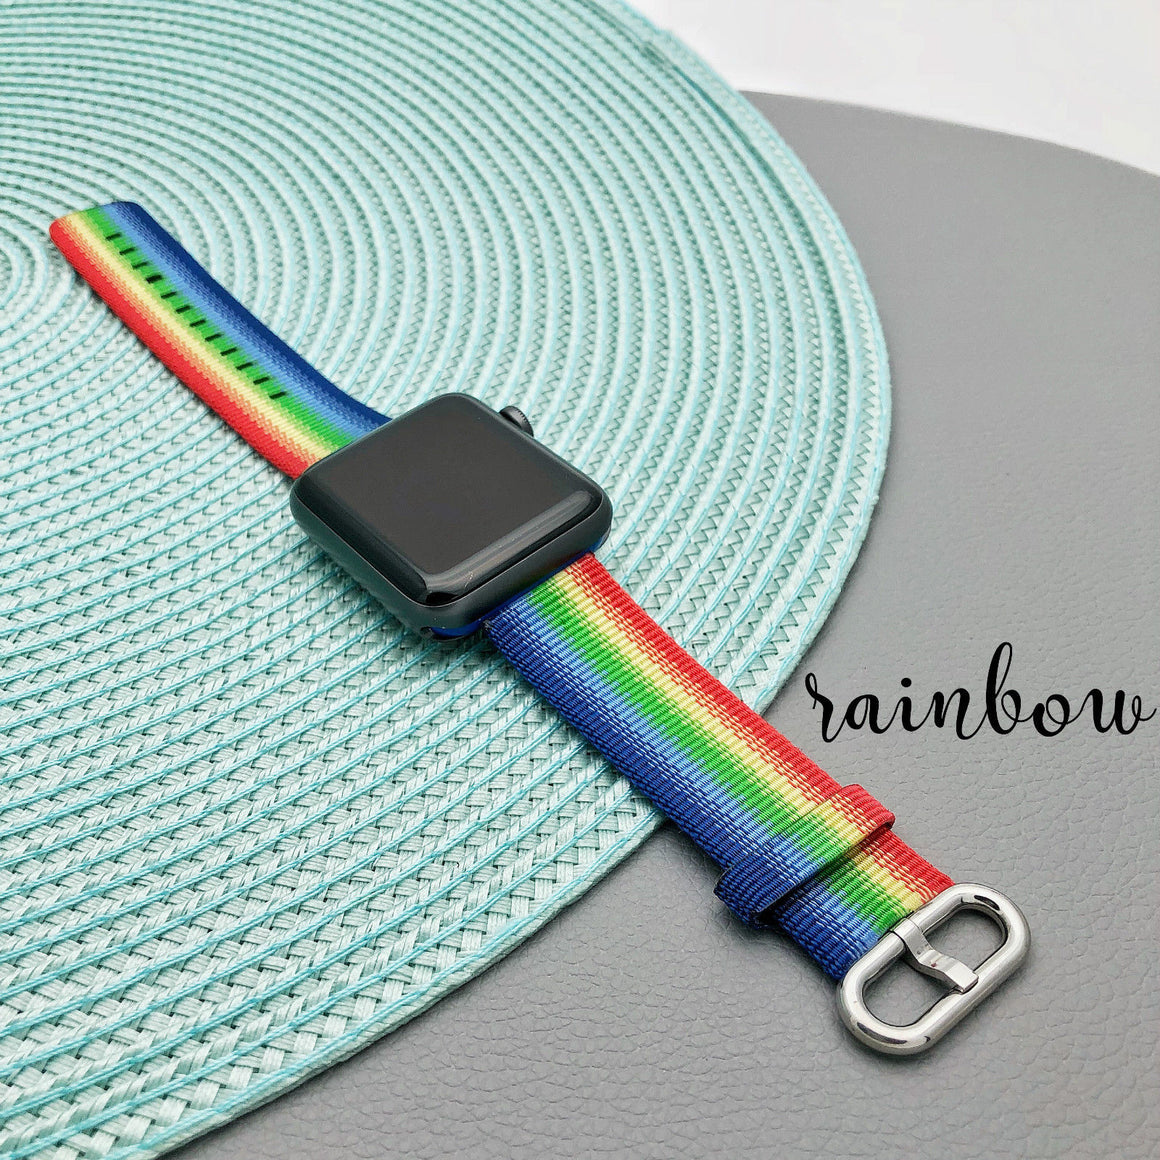 Sports Loop Band Nylon Replacement Strap For Apple Watch Series 1 2 3 i Watch - caseoftheday.com.au